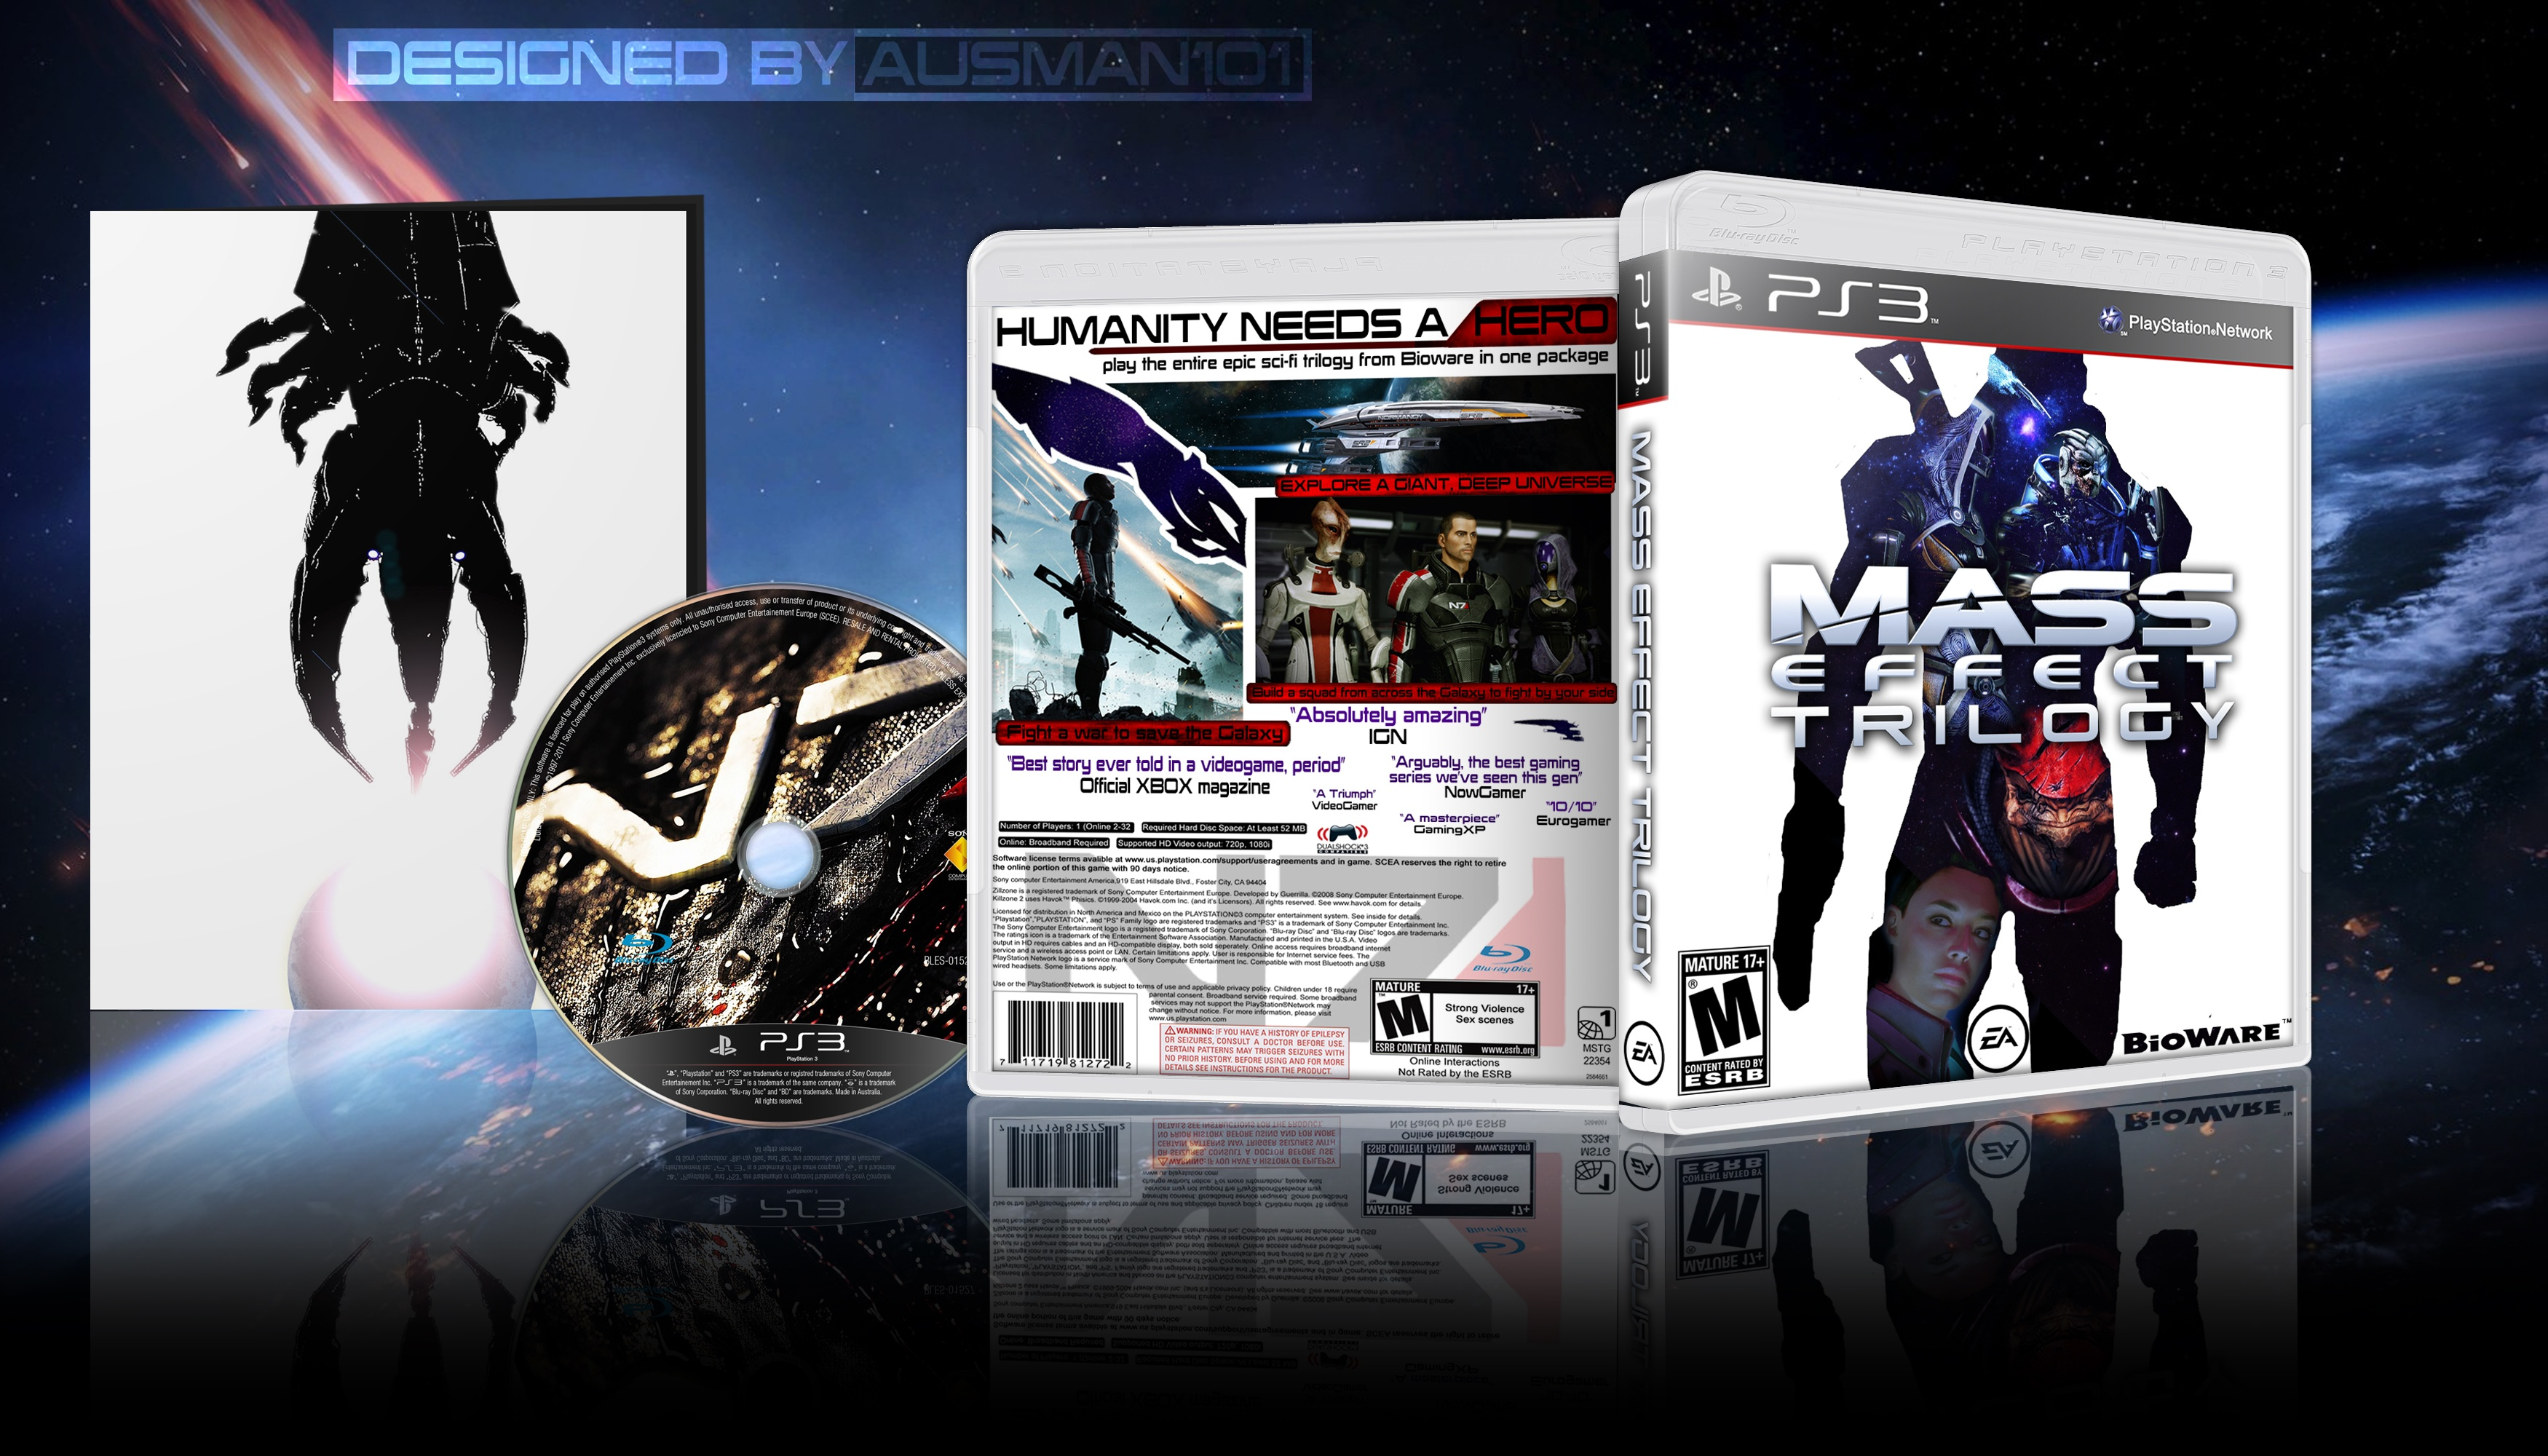 Mass Effect Trilogy box cover